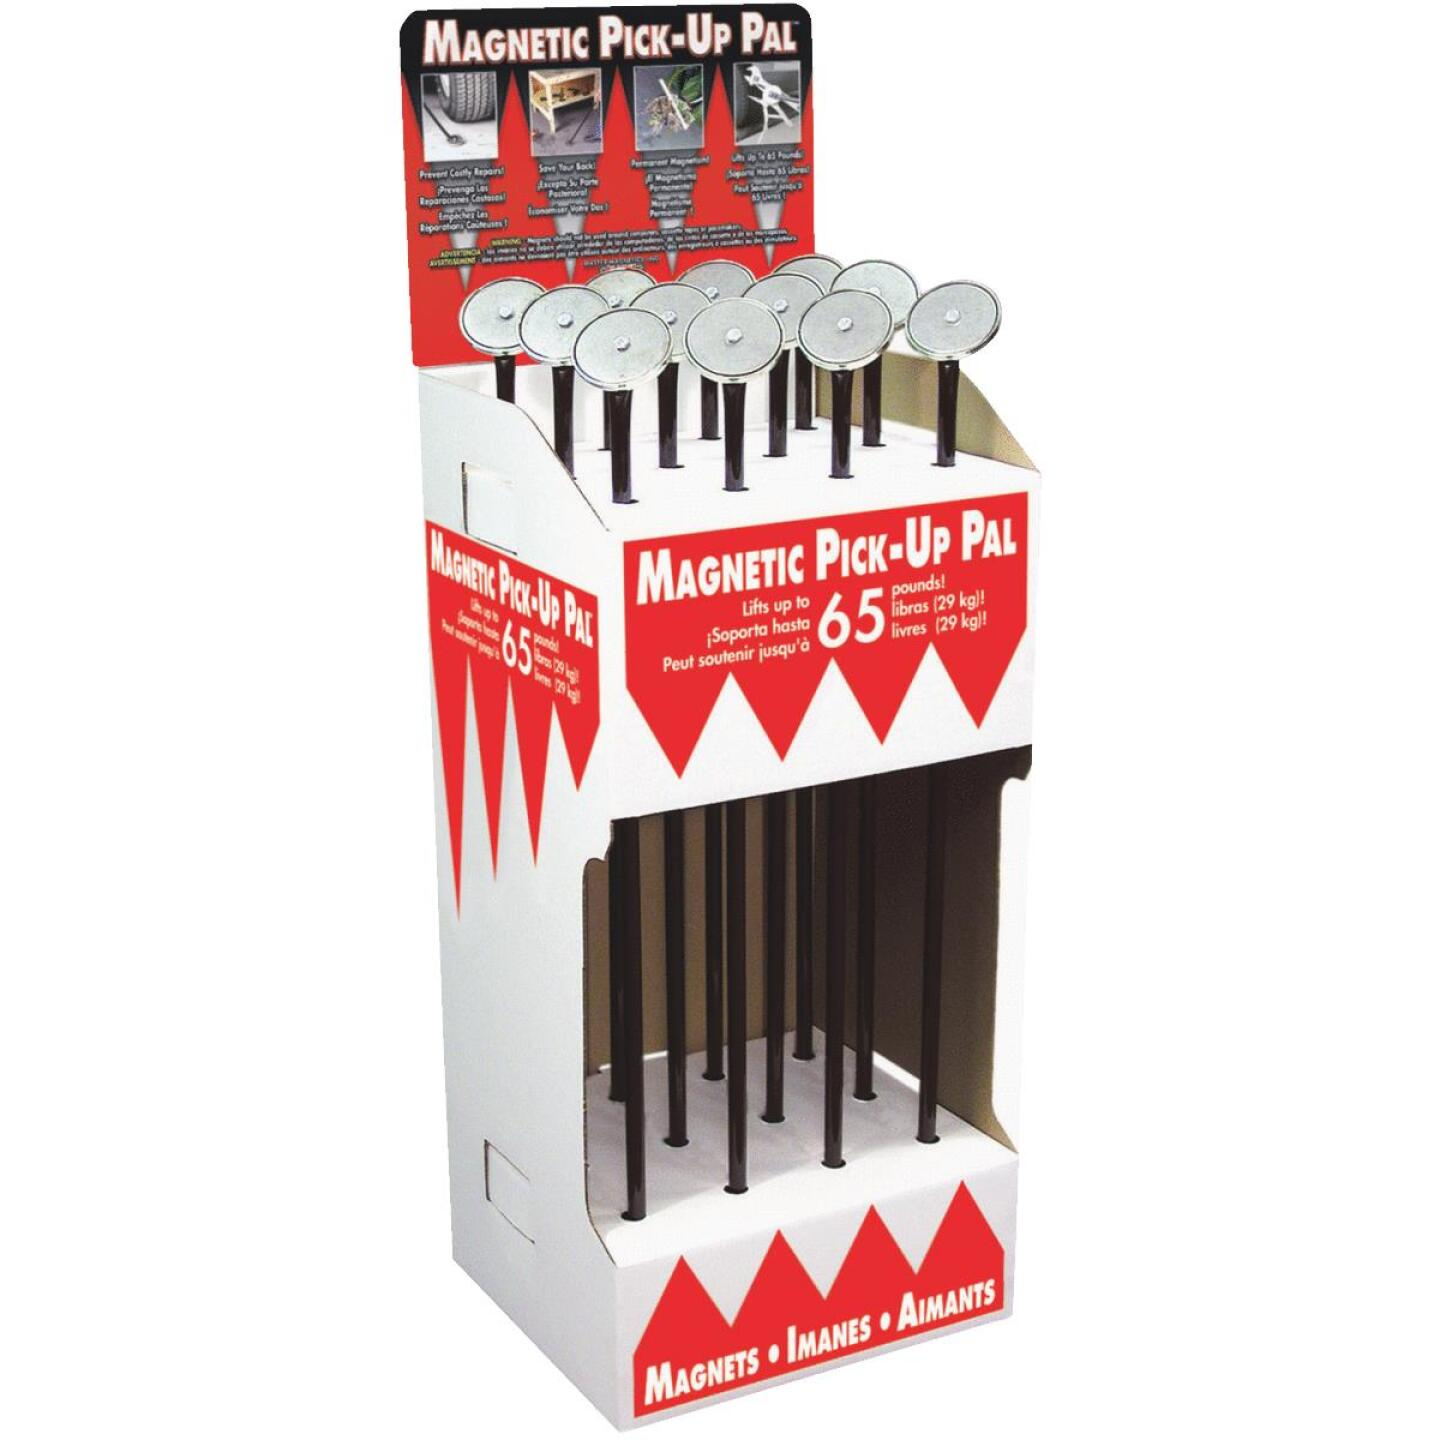 Master Magnetics 36 in. Magnetic Pick-Up Tool Image 3